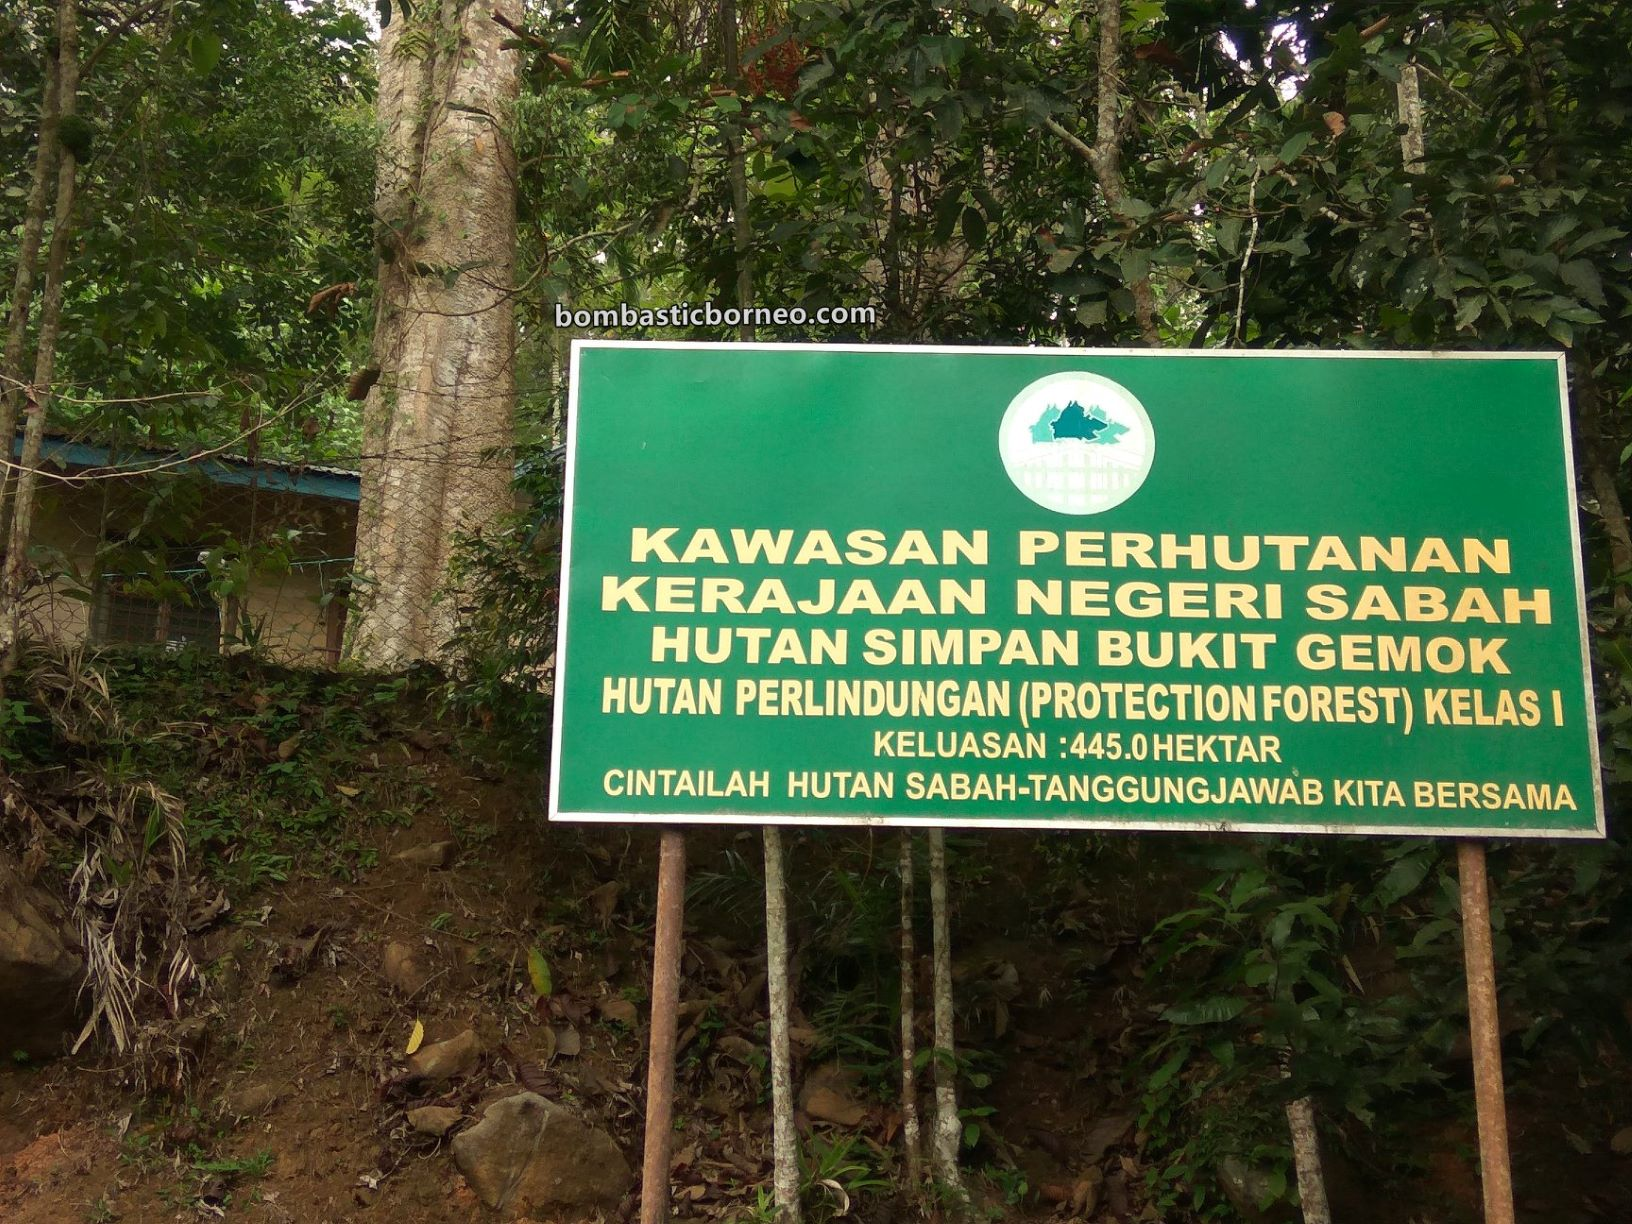 Gemok Hill Forest Reserve, rainforest, nature, primary jungle, hiking, conservation, destination, Malaysia, Sabah, Tourism, travel guide, Trans Borneo, 马来西亚沙巴, 斗湖森林保护区,